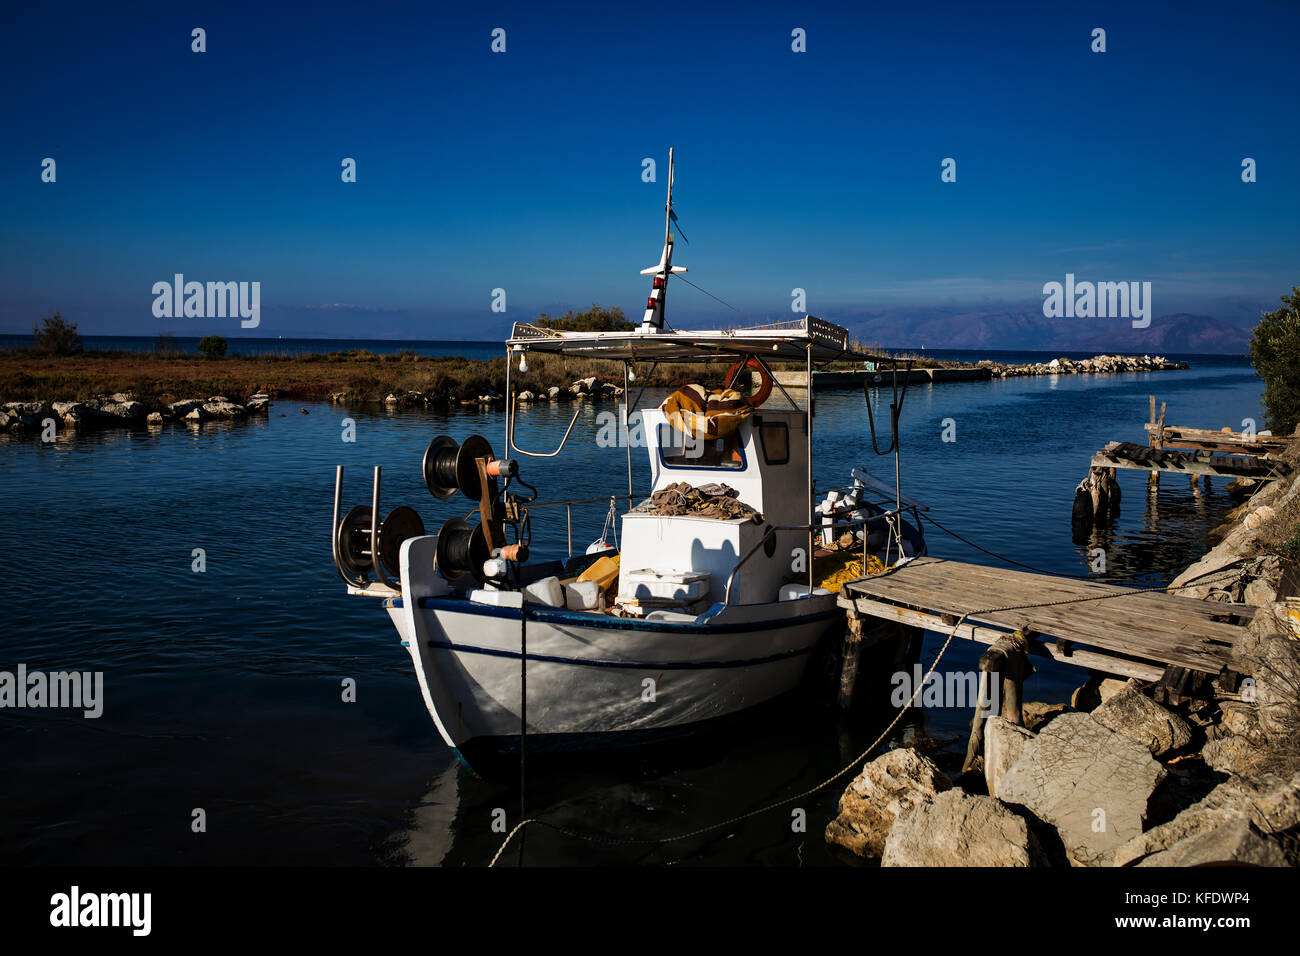 A fishing boat in a canal, river, close to the town Lefkimmi, Ionian Islands, Greece. Blue sky, sun, holidays in - Stock Image